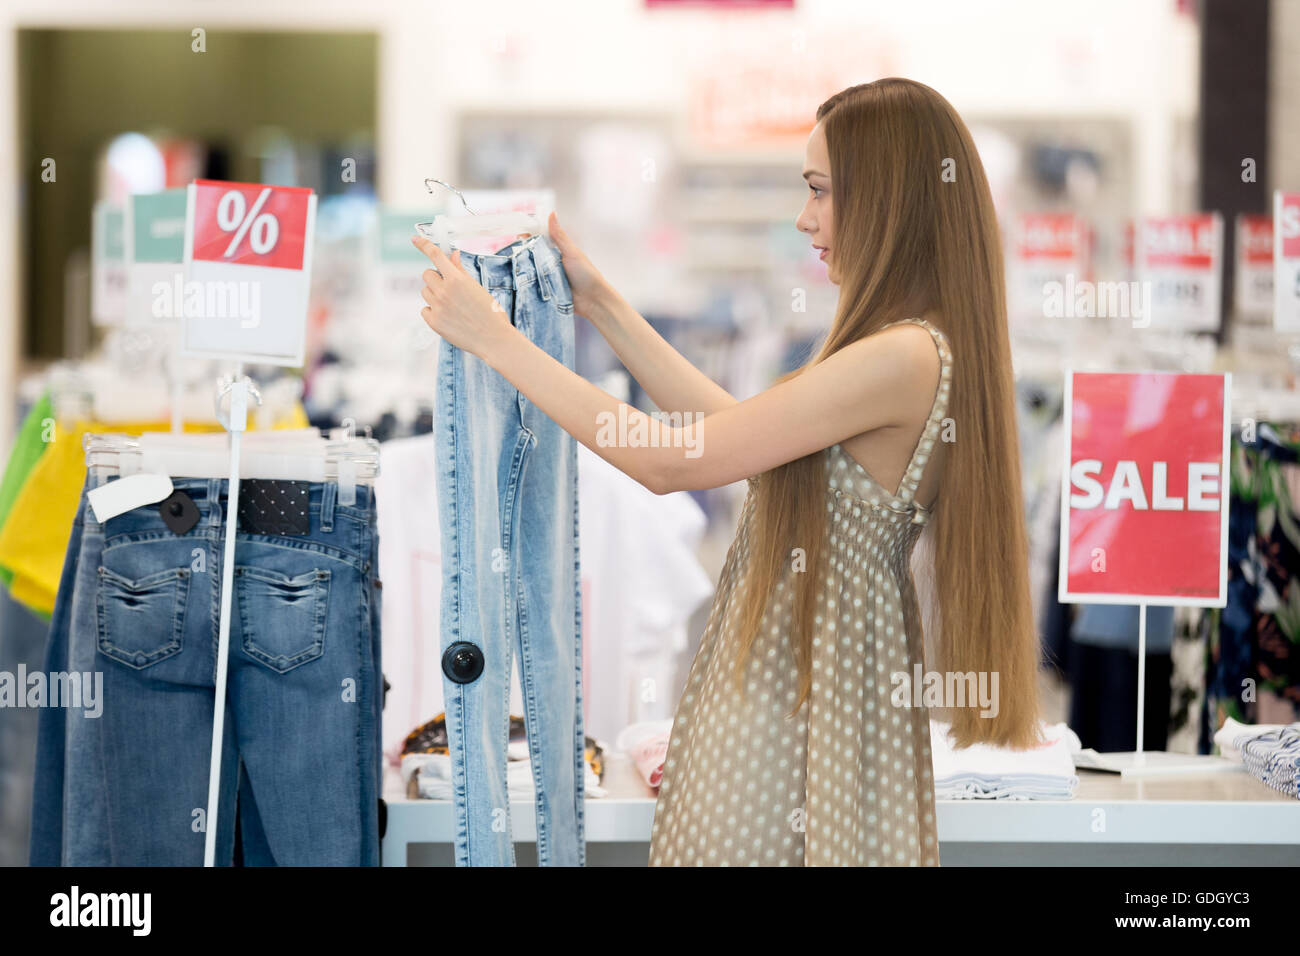 893c859d5c Profile portrait of long-haired young pretty woman in shopping centre store  choosing clothes looking at jeans and thinking